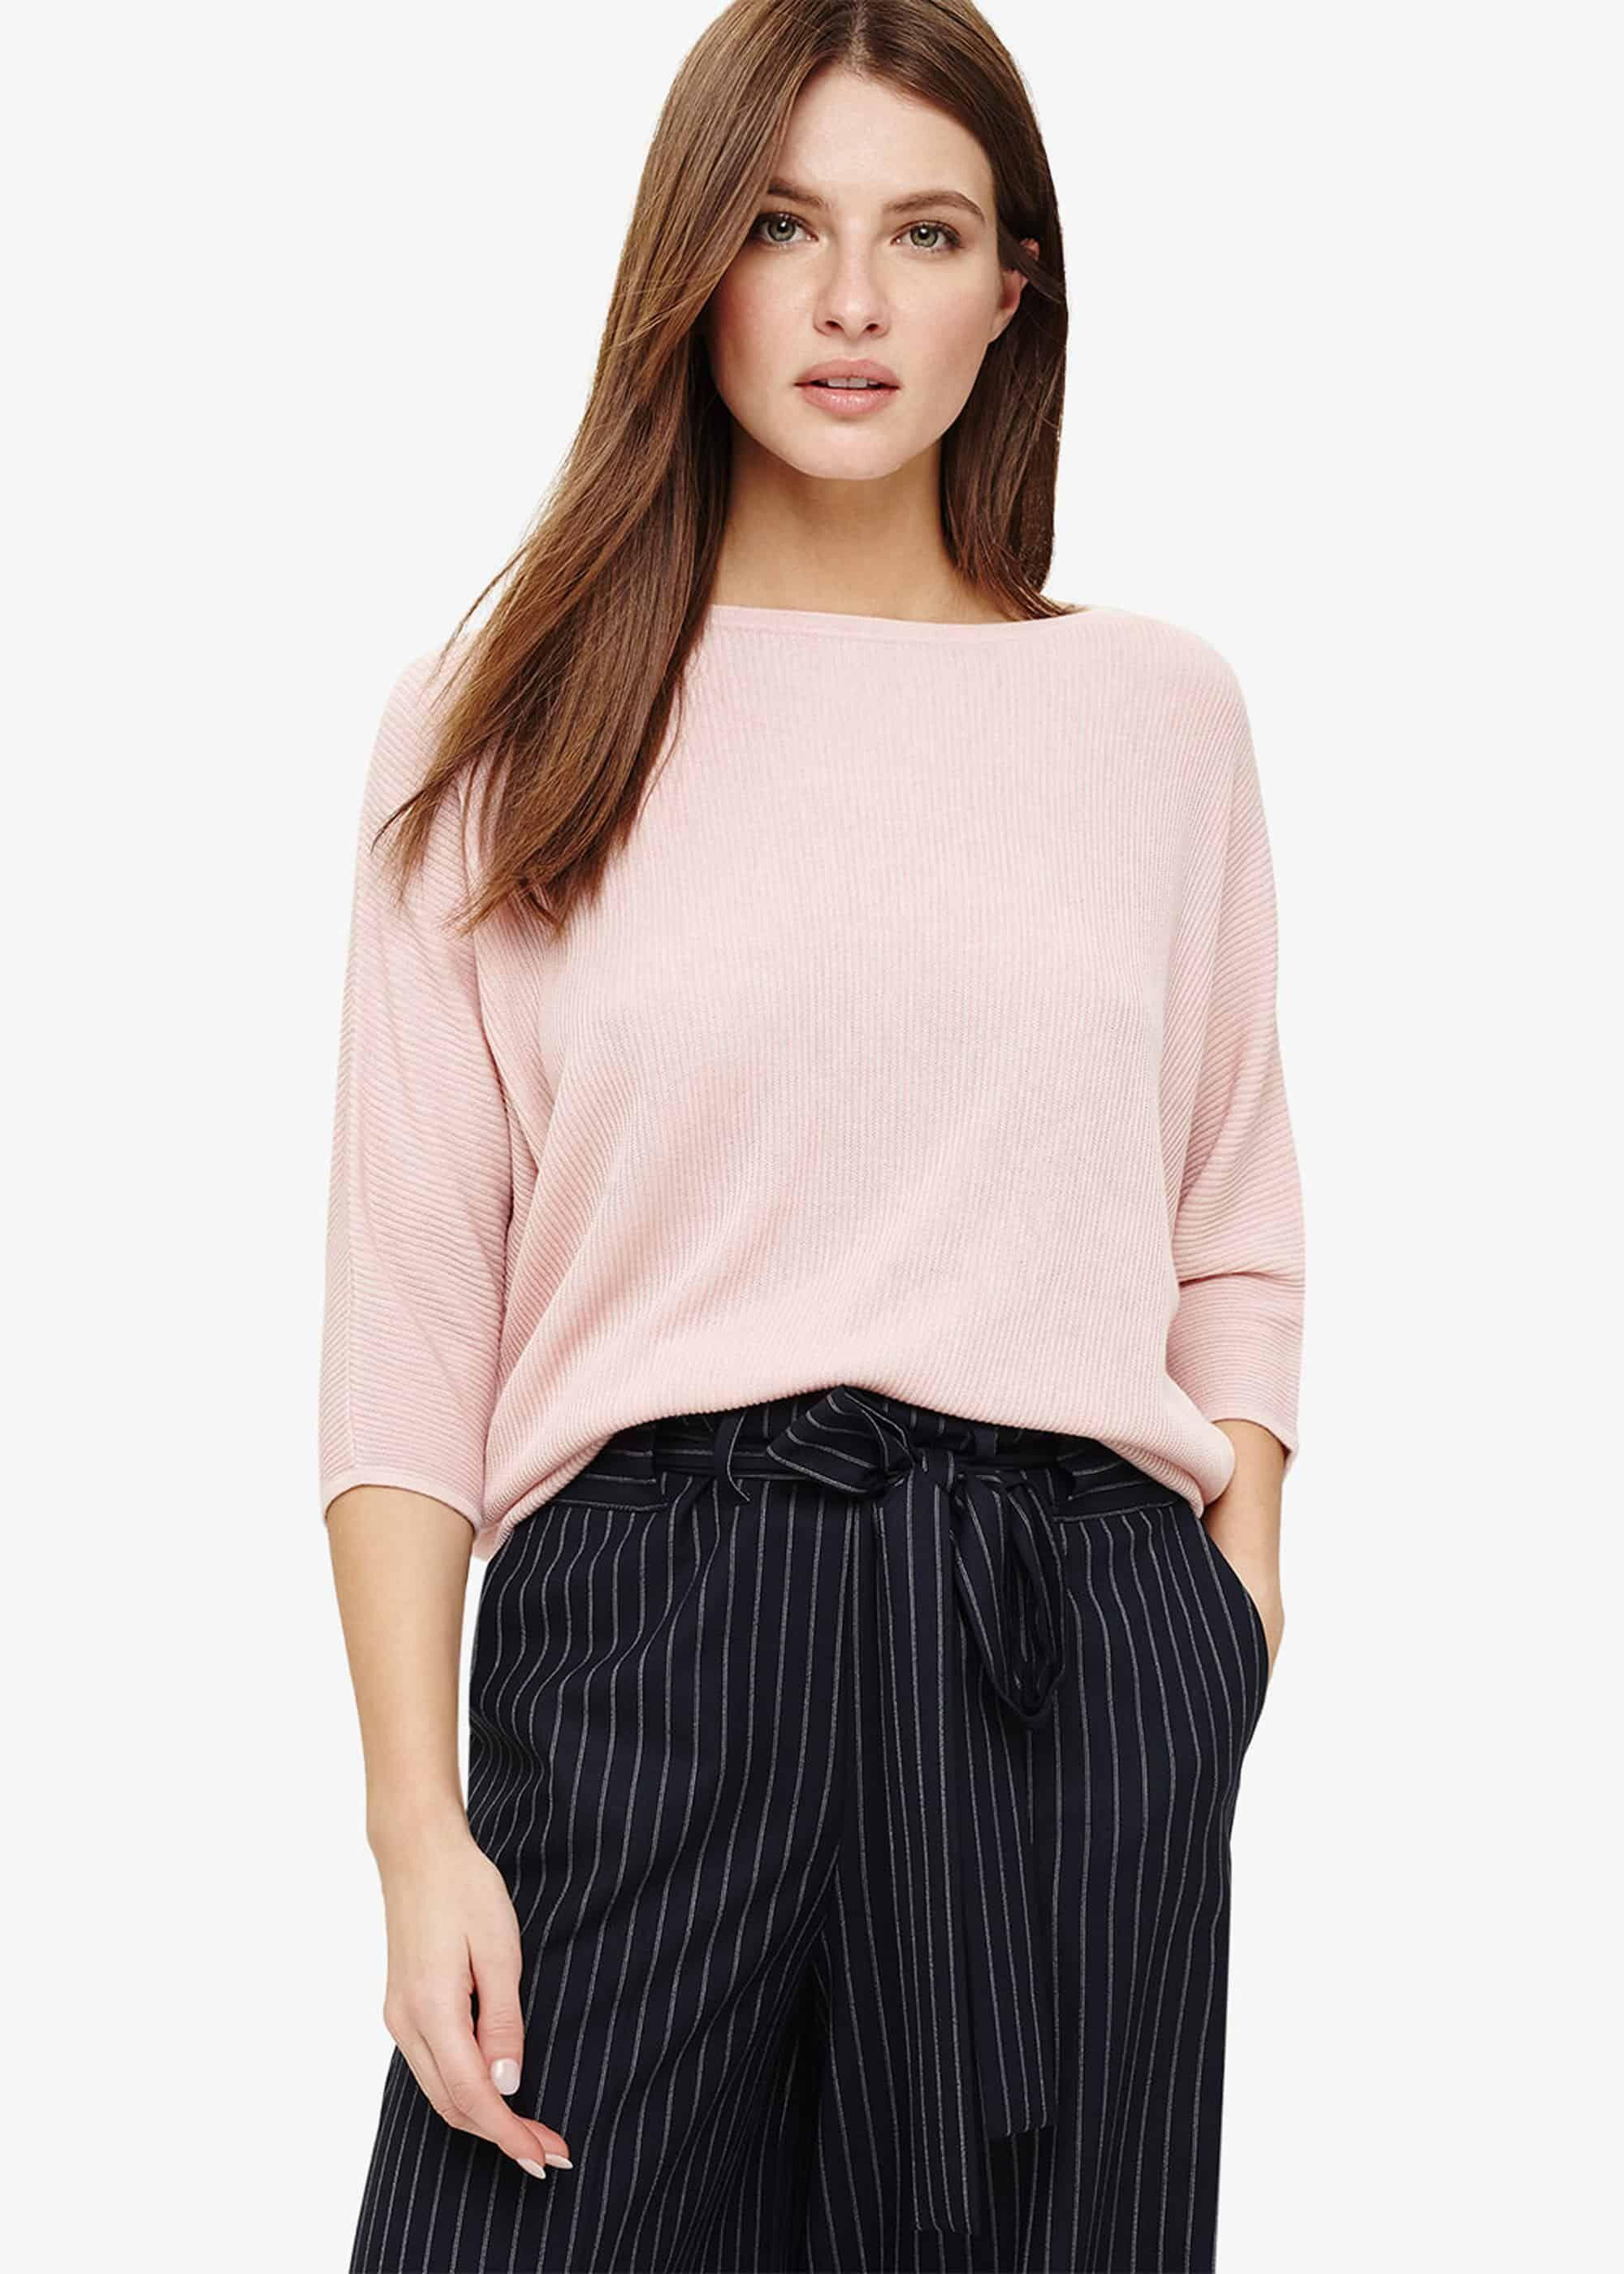 127bcdd9753 Women's Pink Becca Rib Stitch Knitted Top